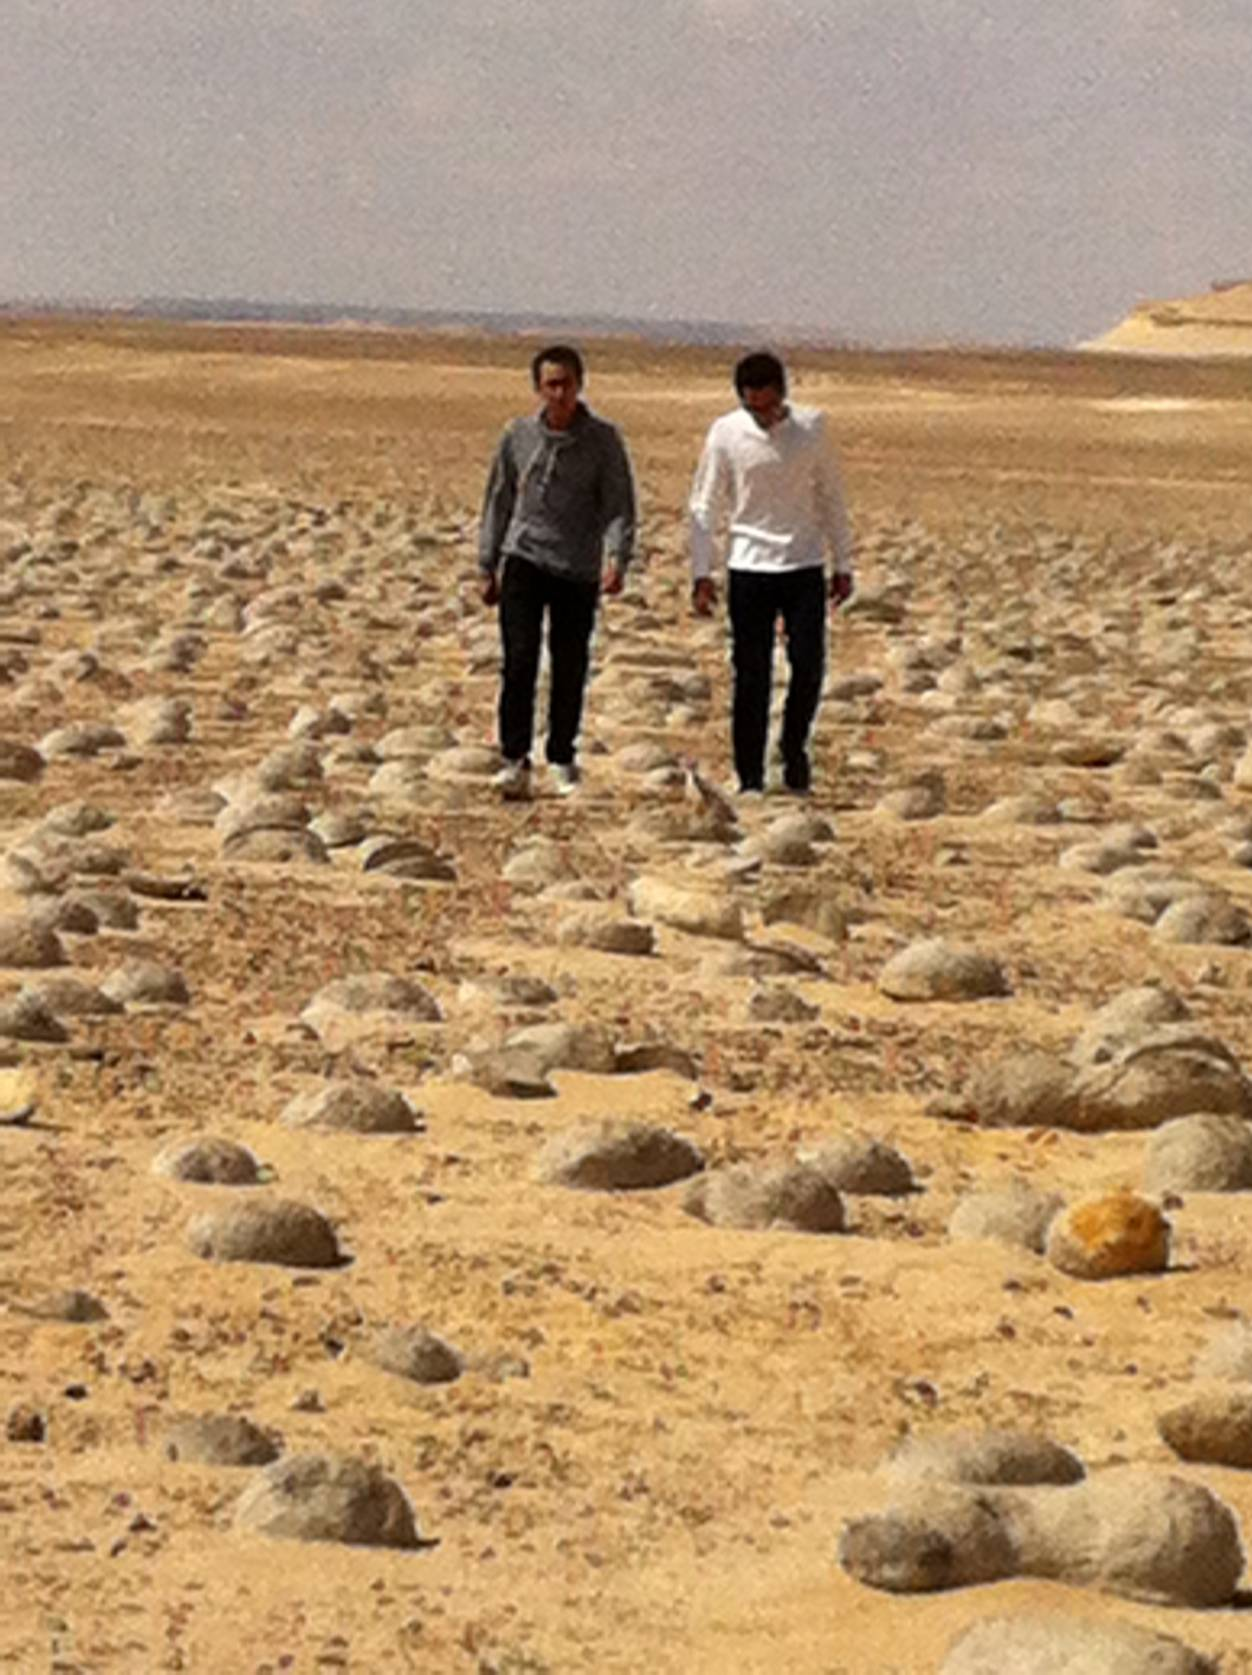 walking through western desert:valley of water melons_1